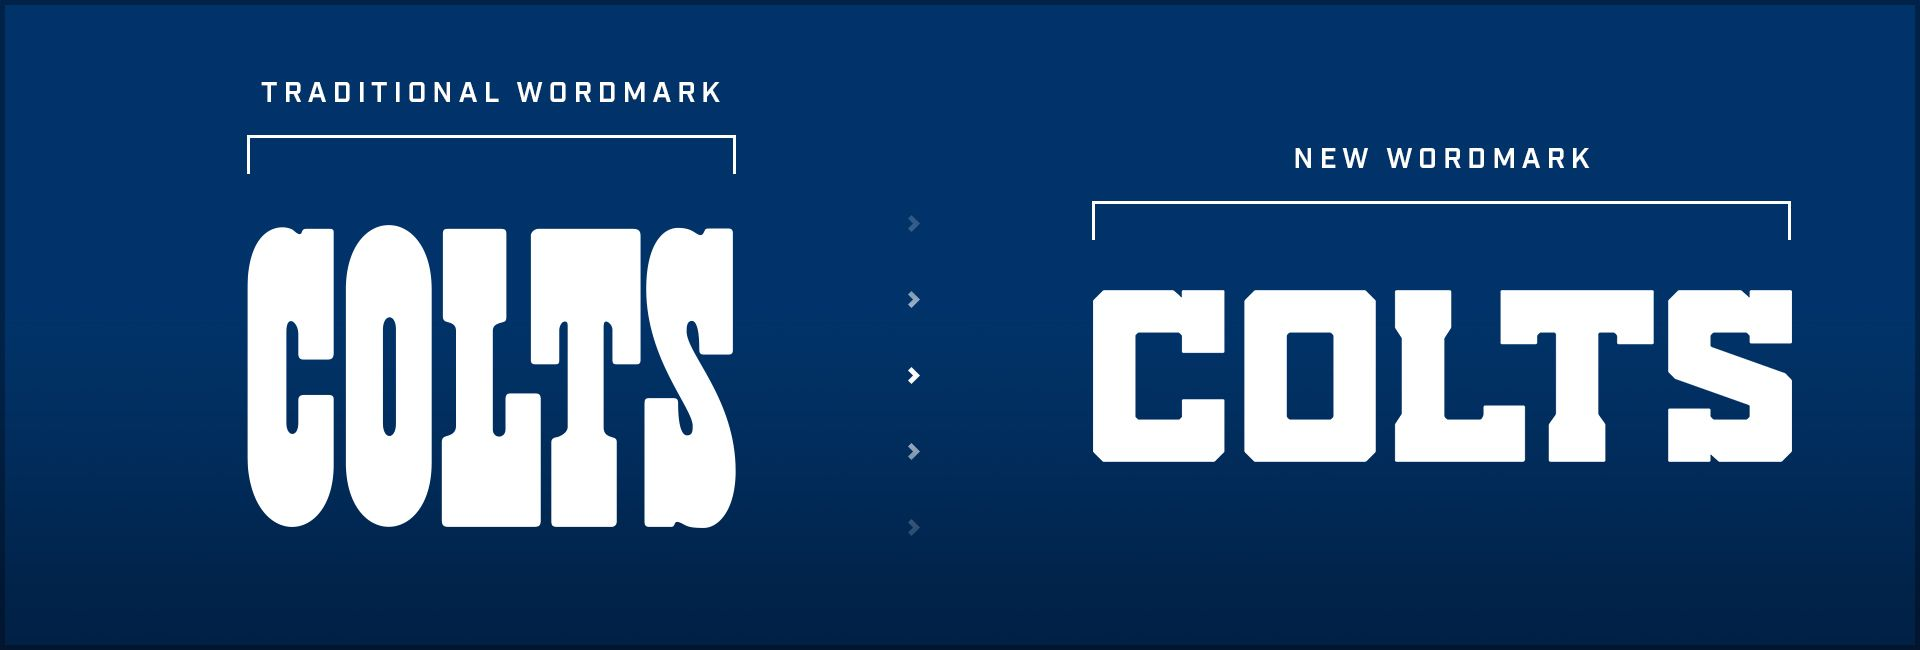 \[Image featuring the traditional COLTS wordmark next to the new COLTS wordmark to be used in 2020\]